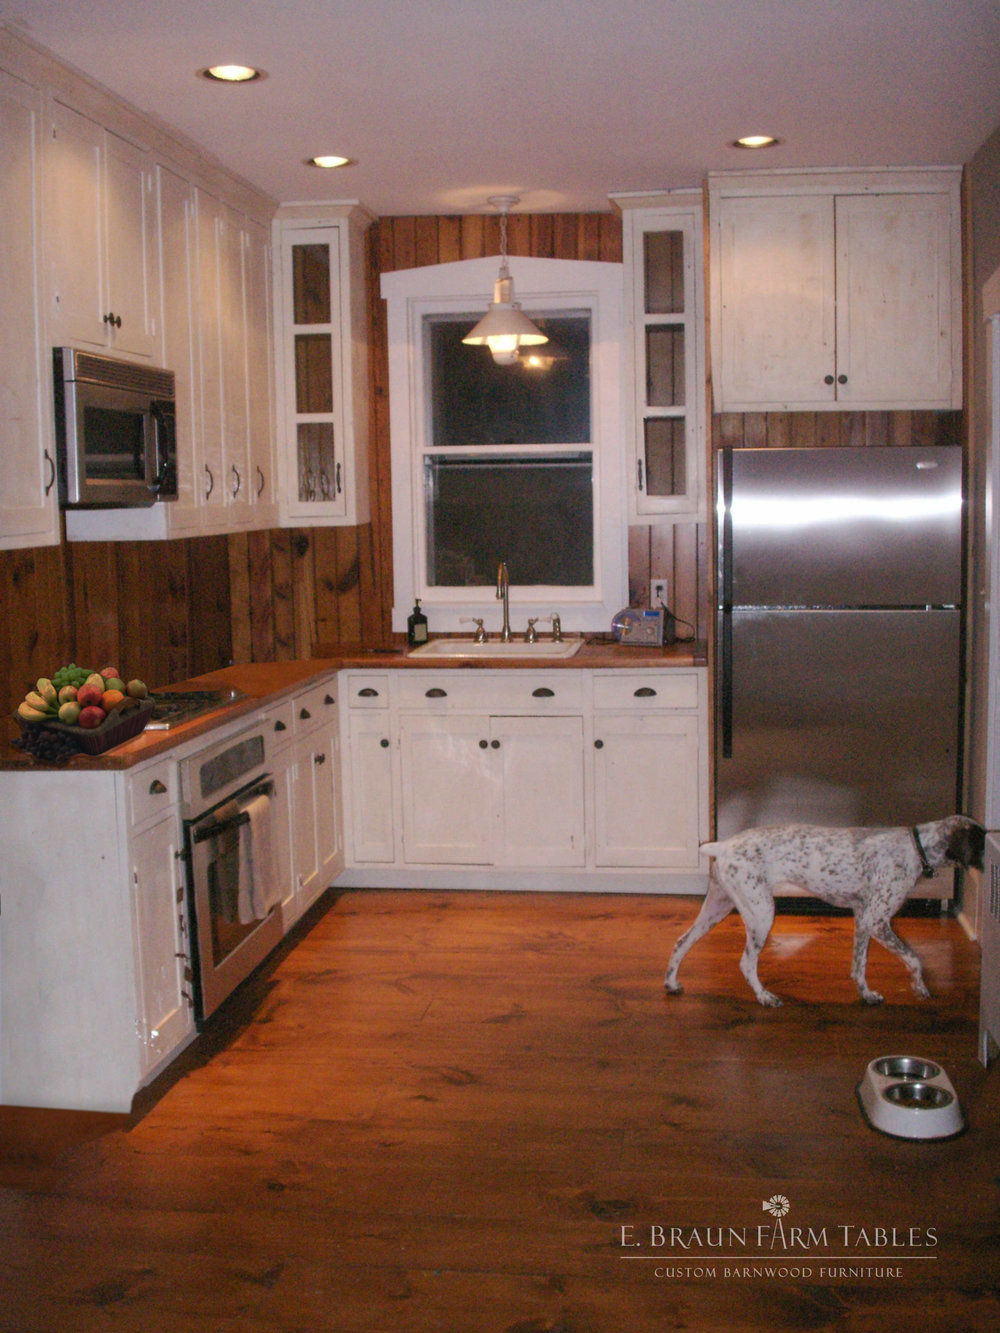 Marietta Avenue kitchen edited 2.jpg